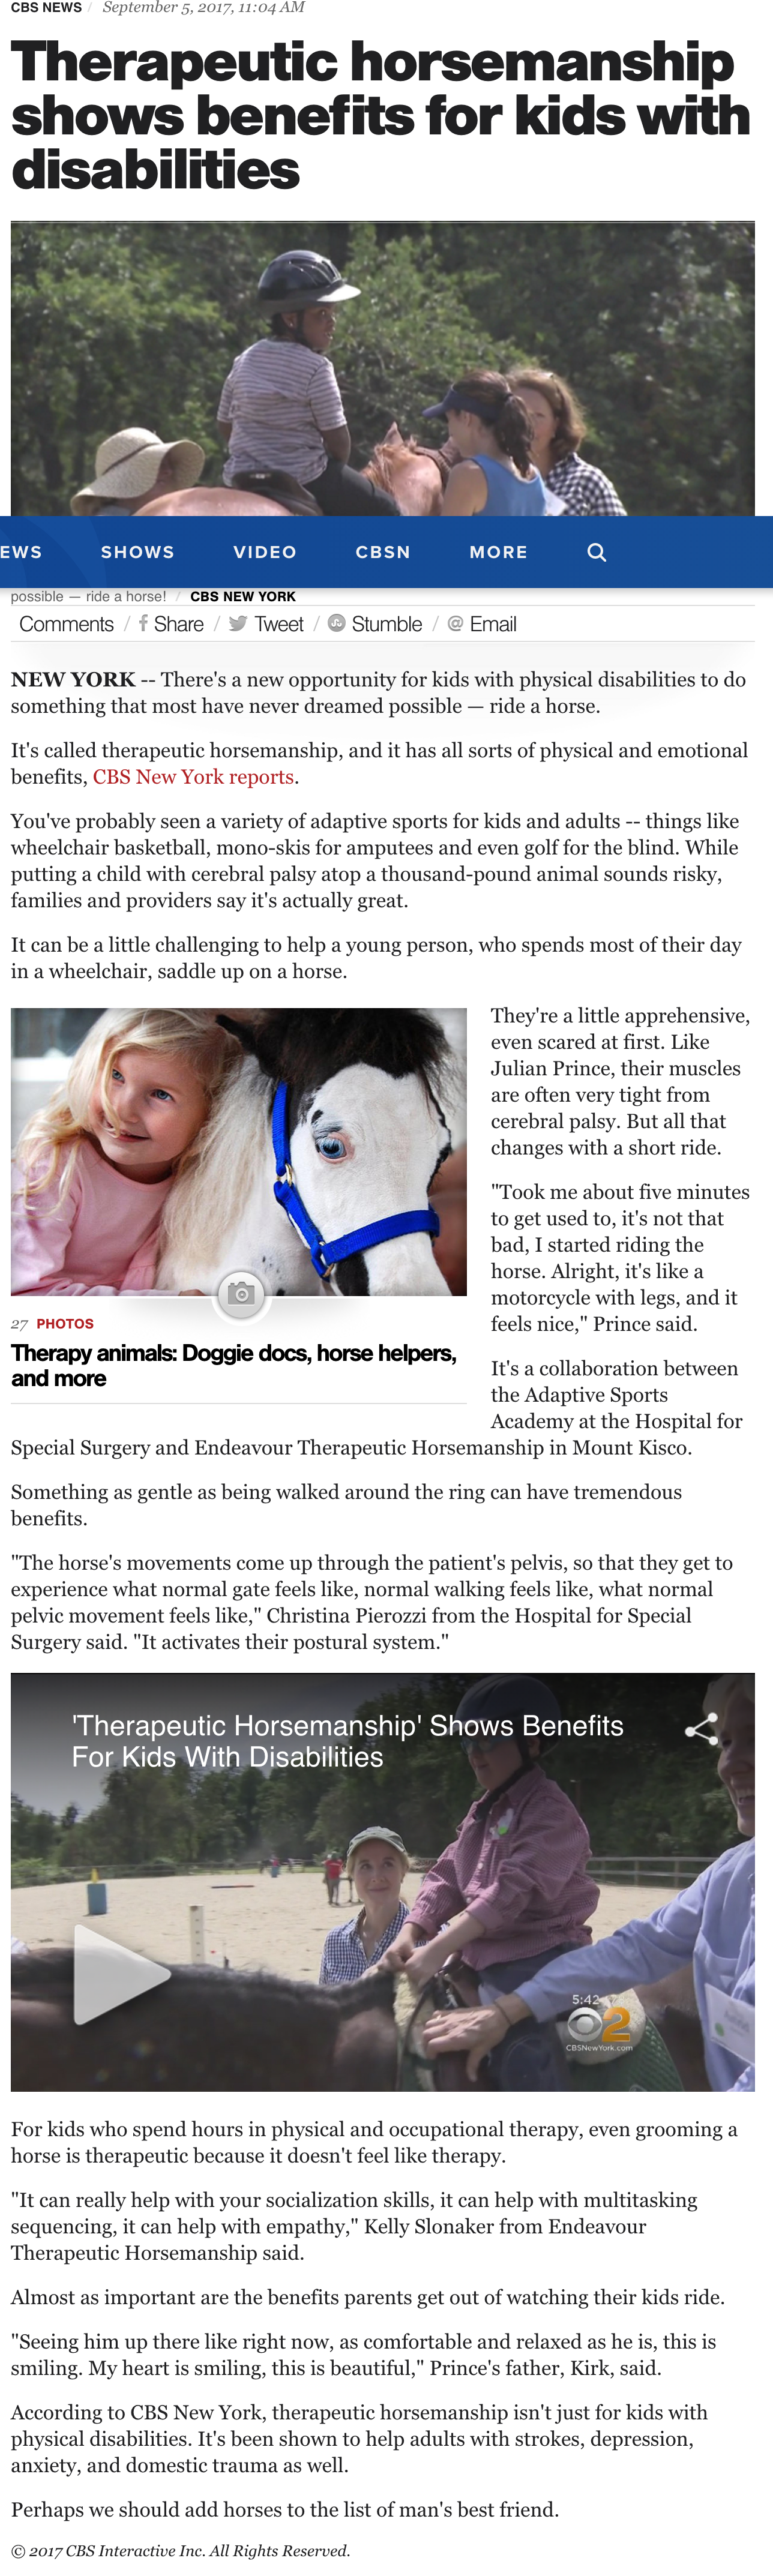 Therapeutic horsemanship shows benefits for kids with disabilities - CBS News.png